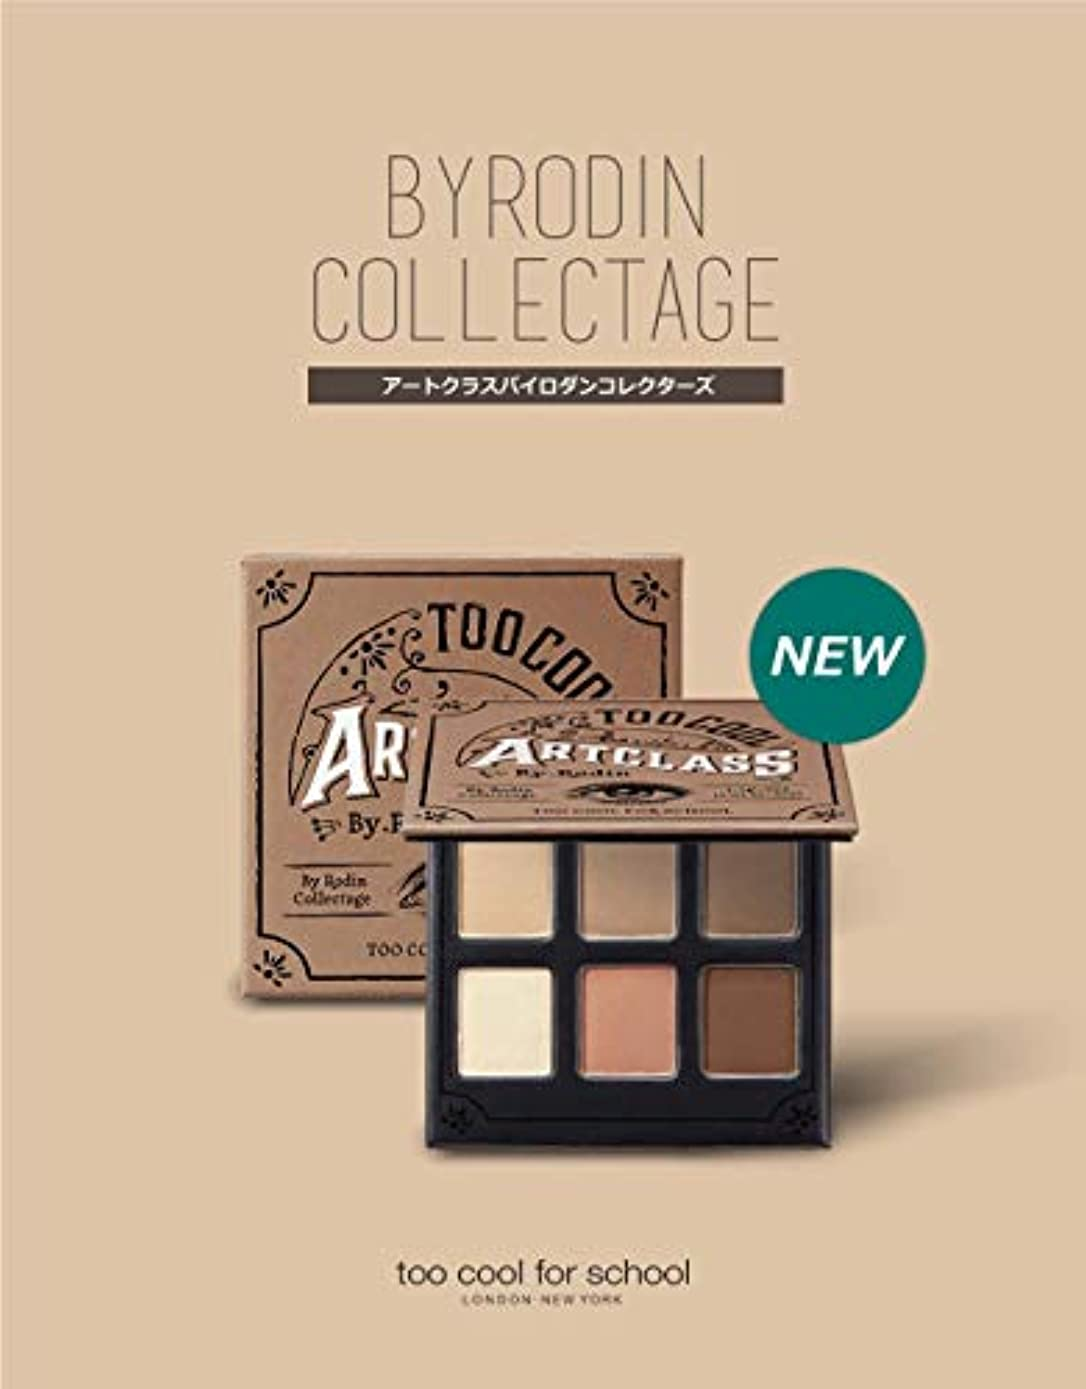 [too cool for school] Artclass By Rodin Byrodin Collectage/アートクラスバイロダンコレクターズ [並行輸入品]